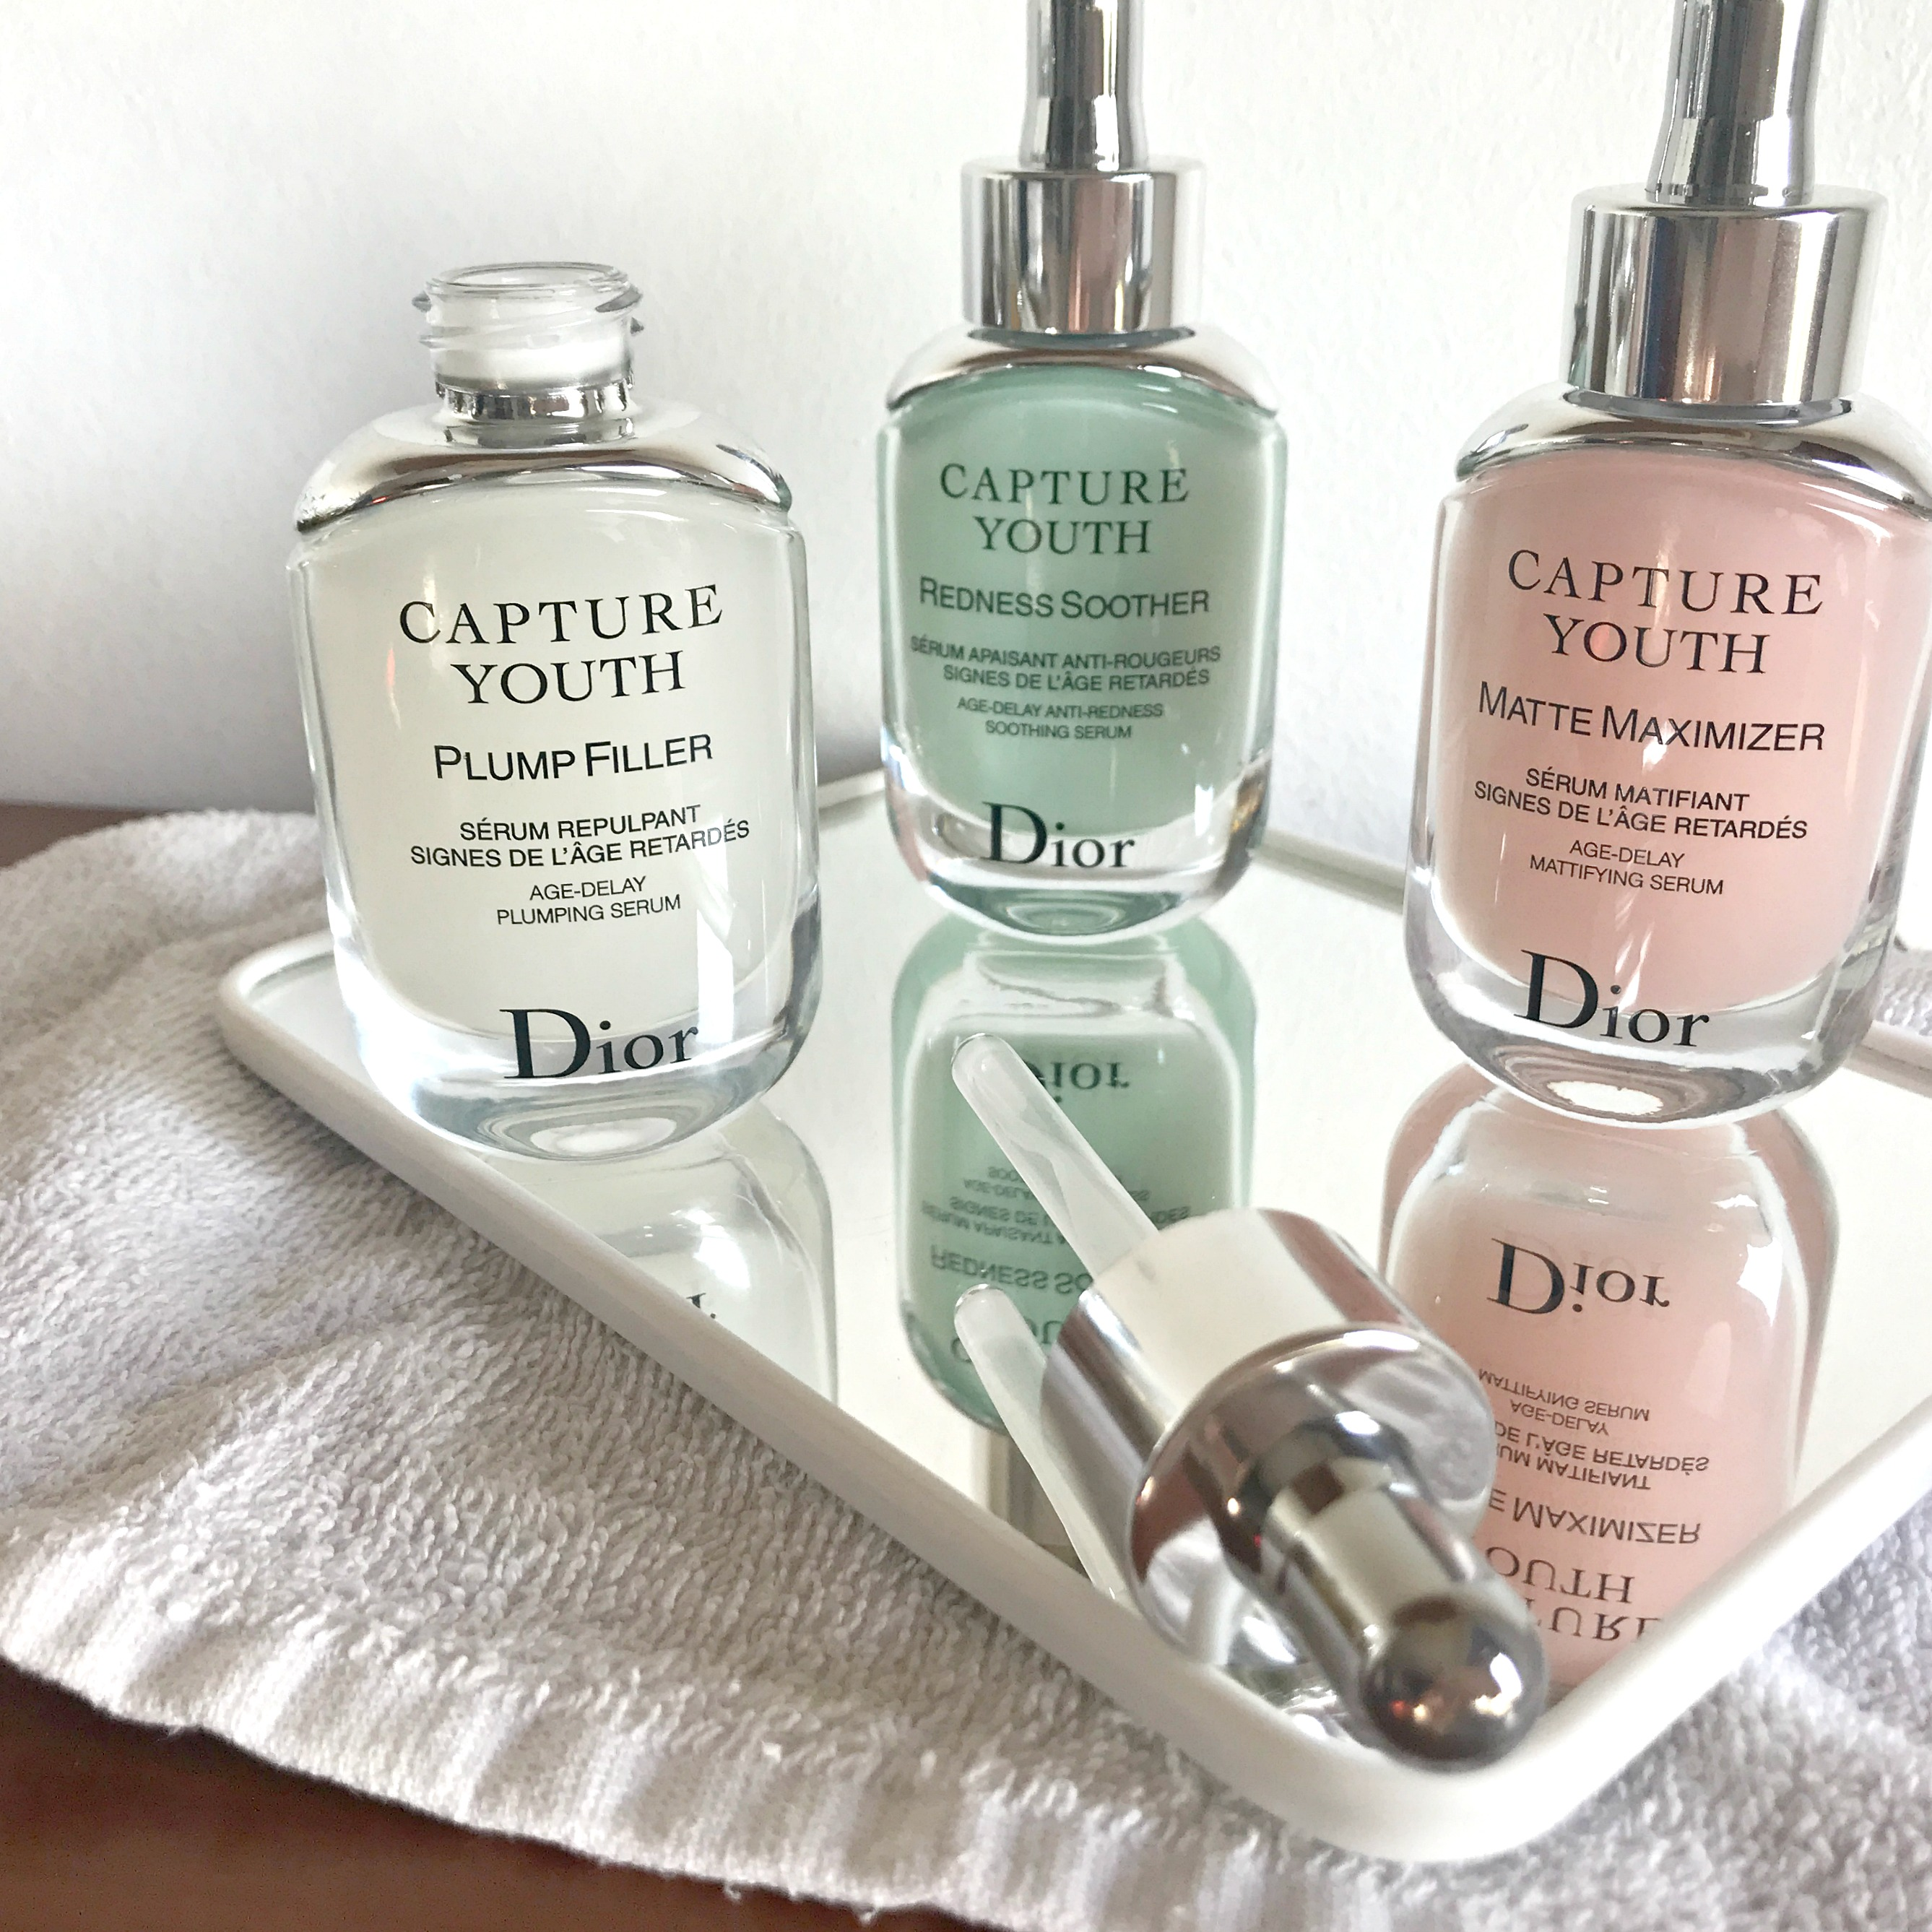 Dior Capture Youth opinioni, Dior Capture Youth anti-age, Dior Capture Youth cos'è, creme dior opinioni, creme antirughe dior, elisa bellino, blogger italiane 2018,